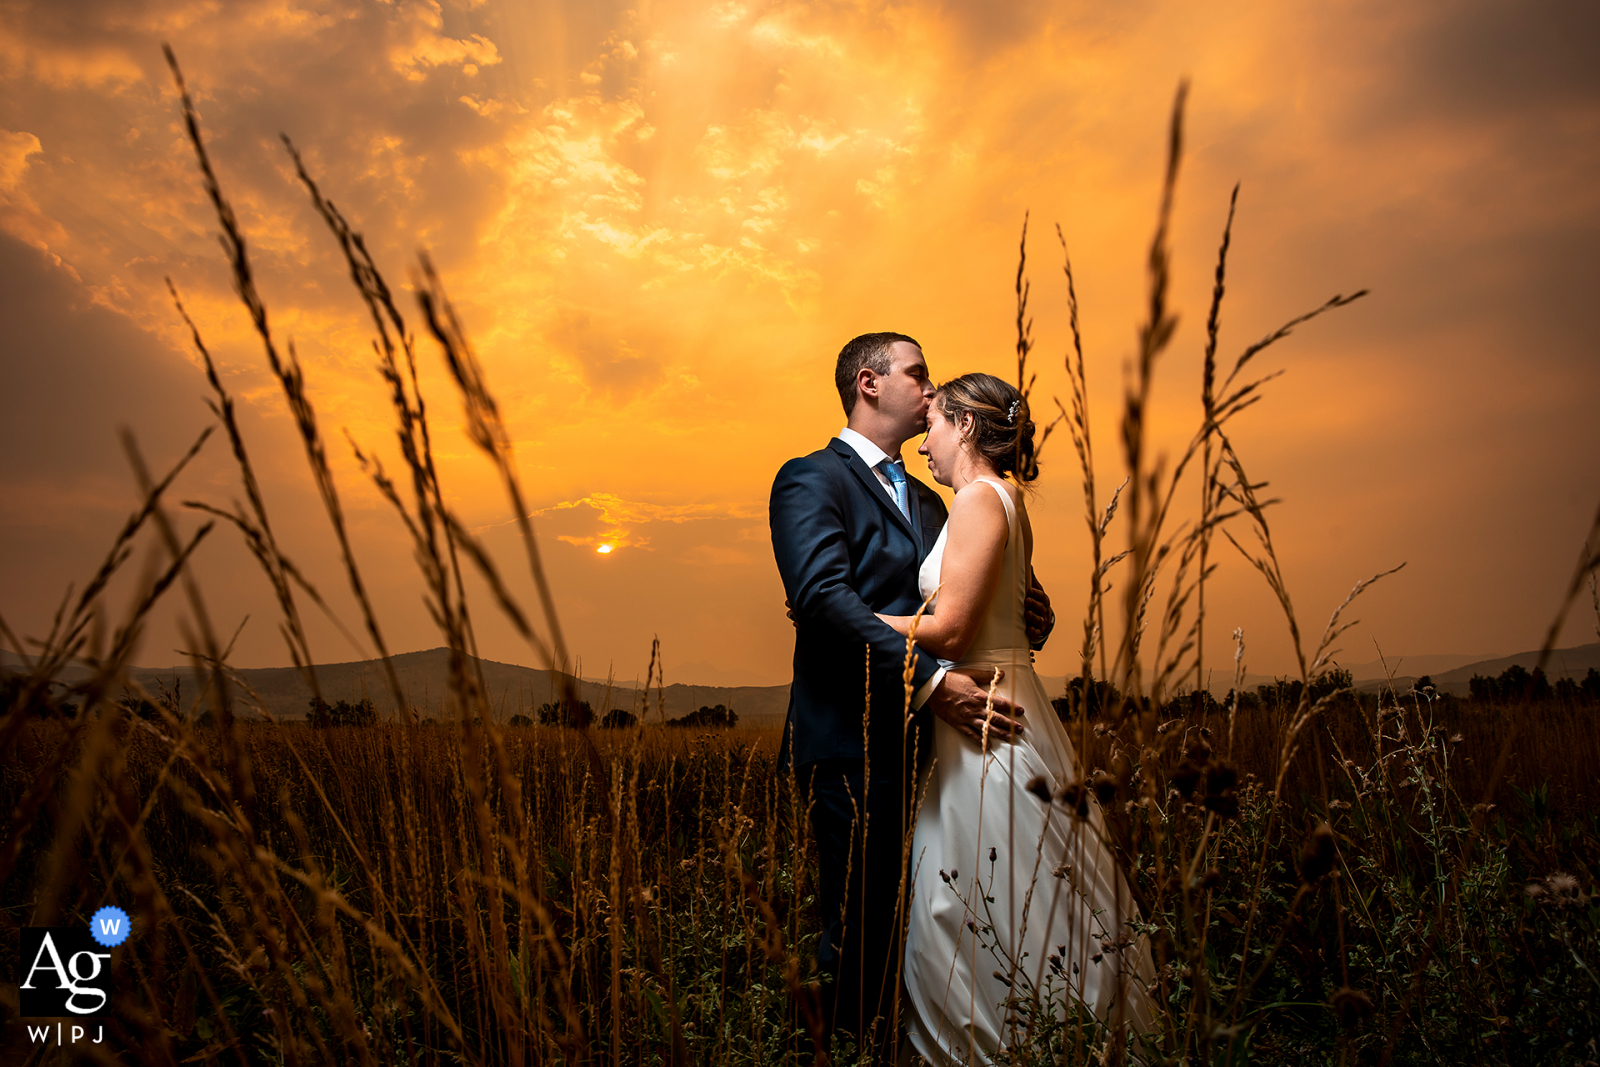 Bride and groom portrait against orange sky at the Shupe Homestead in Hygiene, CO